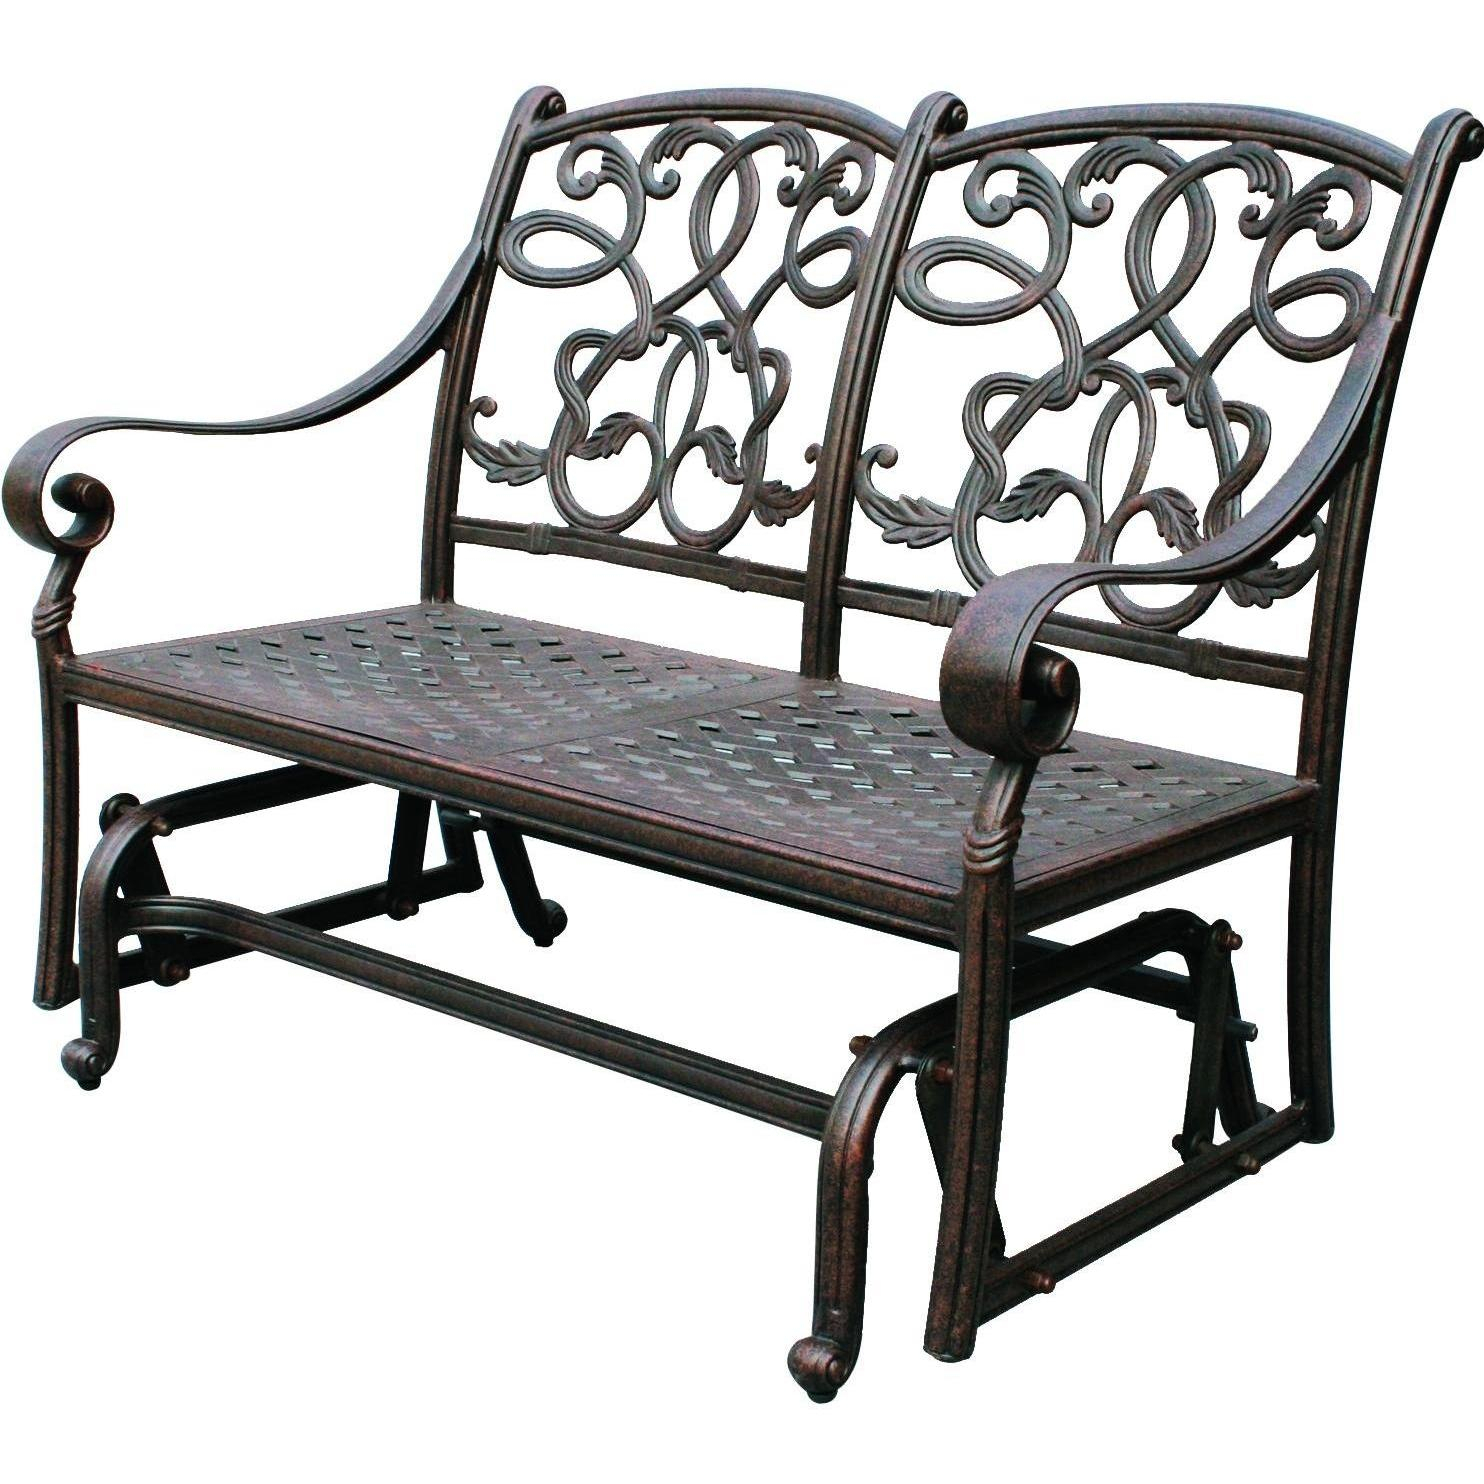 Darlee Santa Monica Cast Aluminum Patio Loveseat Glider Pertaining To Aluminum Glider Benches With Cushion (View 18 of 25)